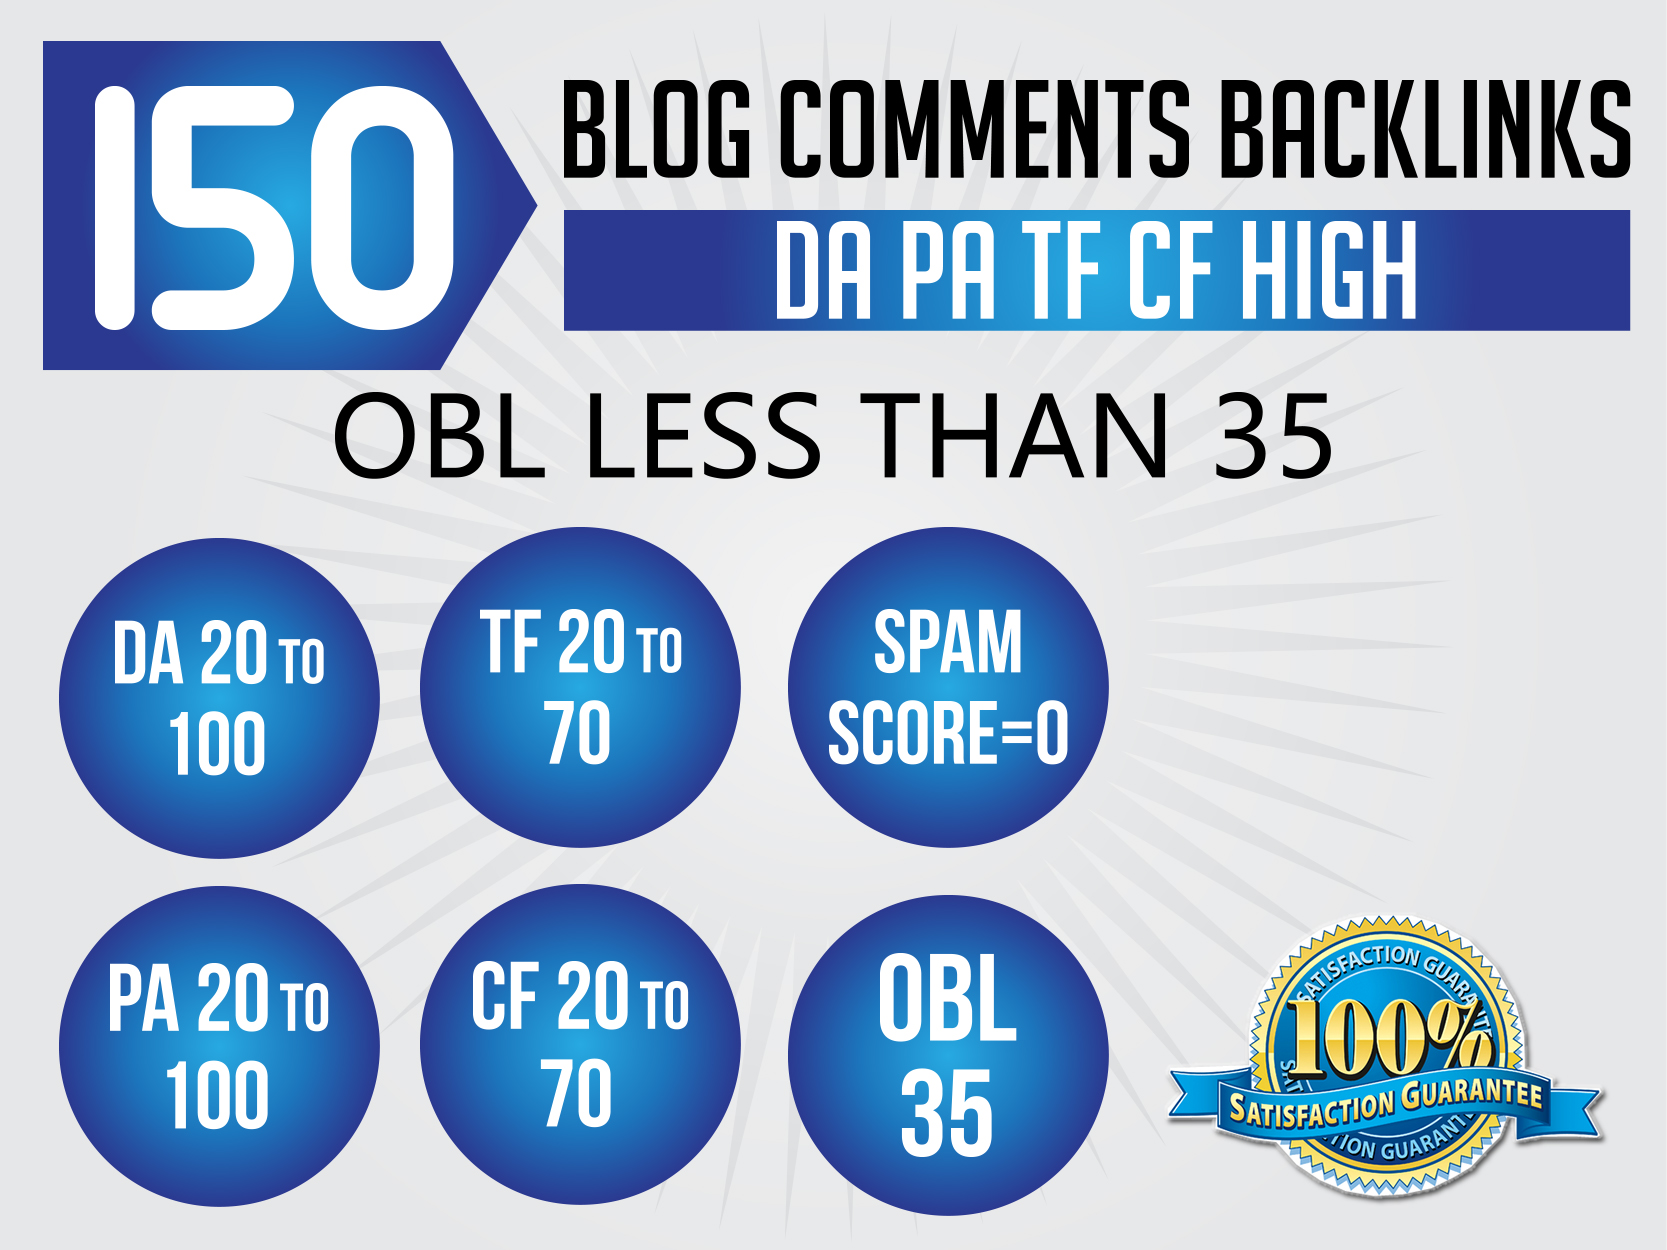 i Will Creat 150 Uniqe Domain Blog Comments Dofollow Backliks With High DA and PA Low OBL